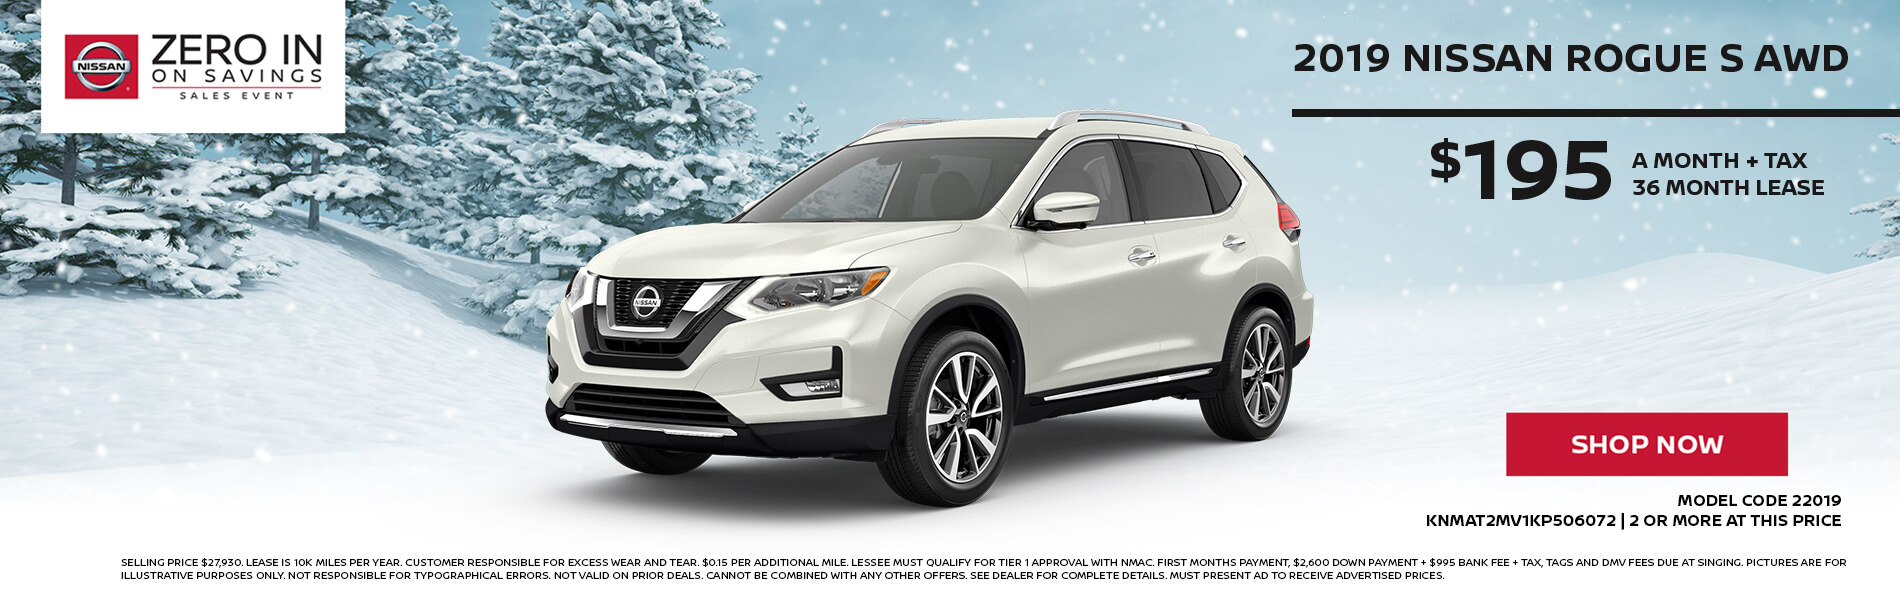 New Used Nissan Dealer Long Island Ny Riverhead Rotate Tires Altima Rogue 195 Lease